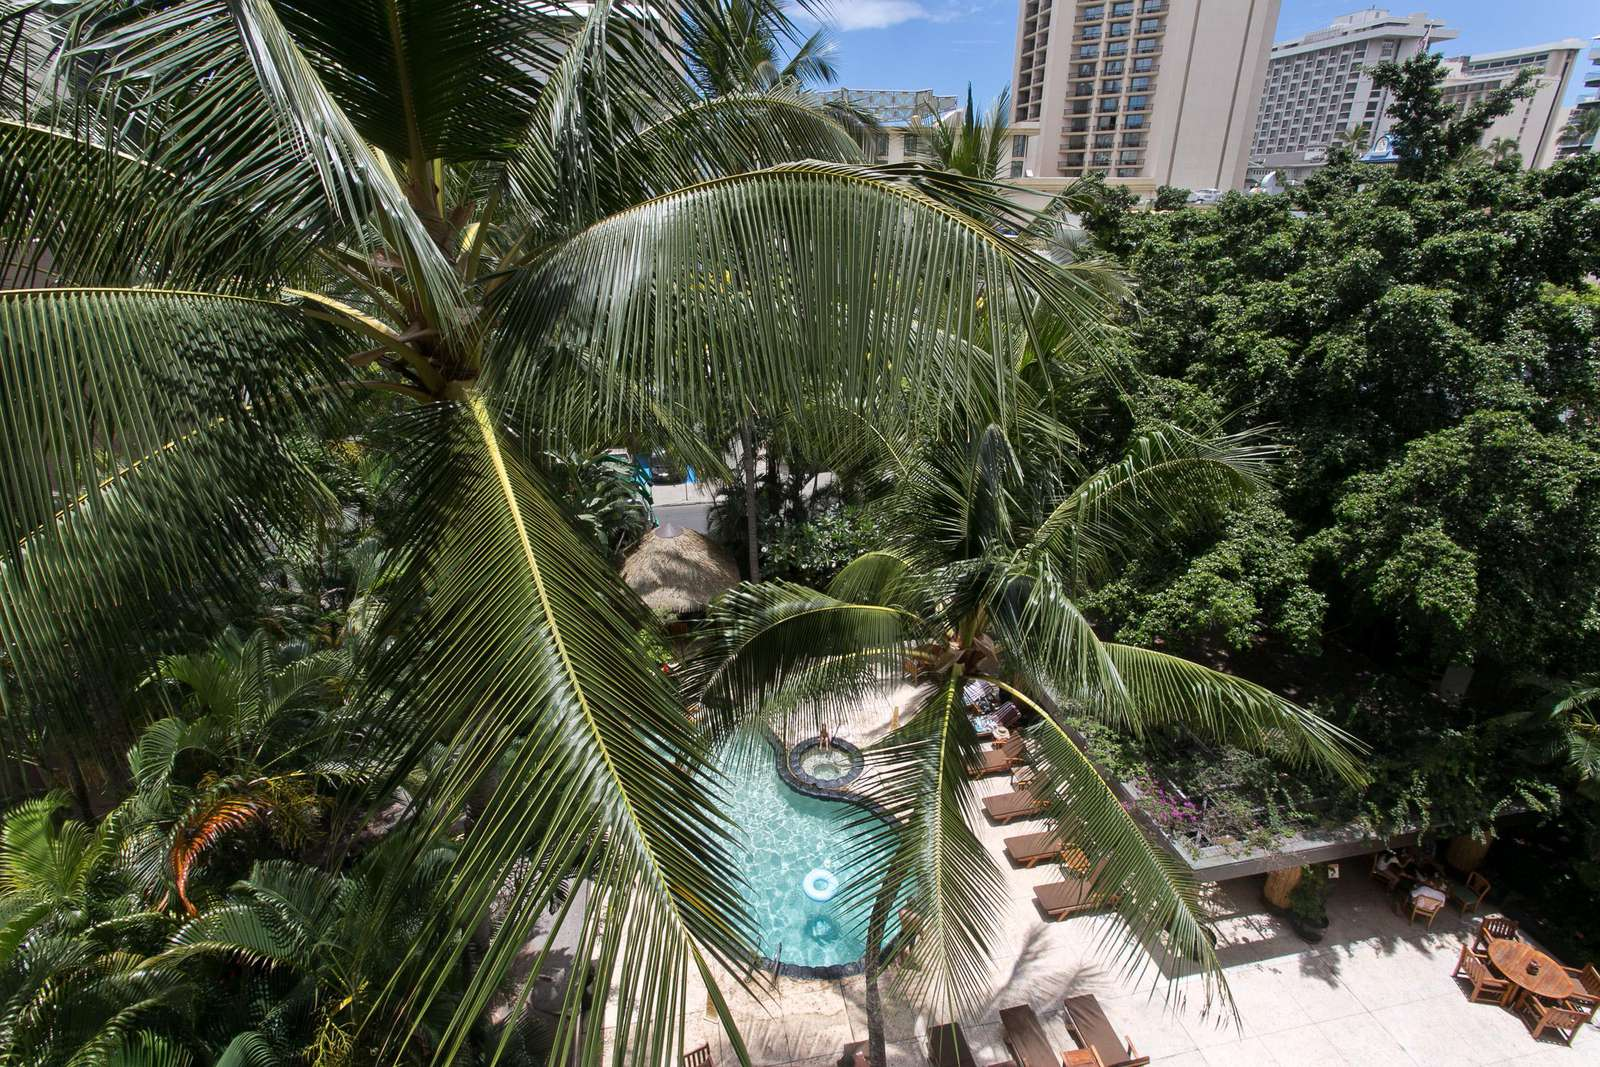 Overlooking the lush pool area